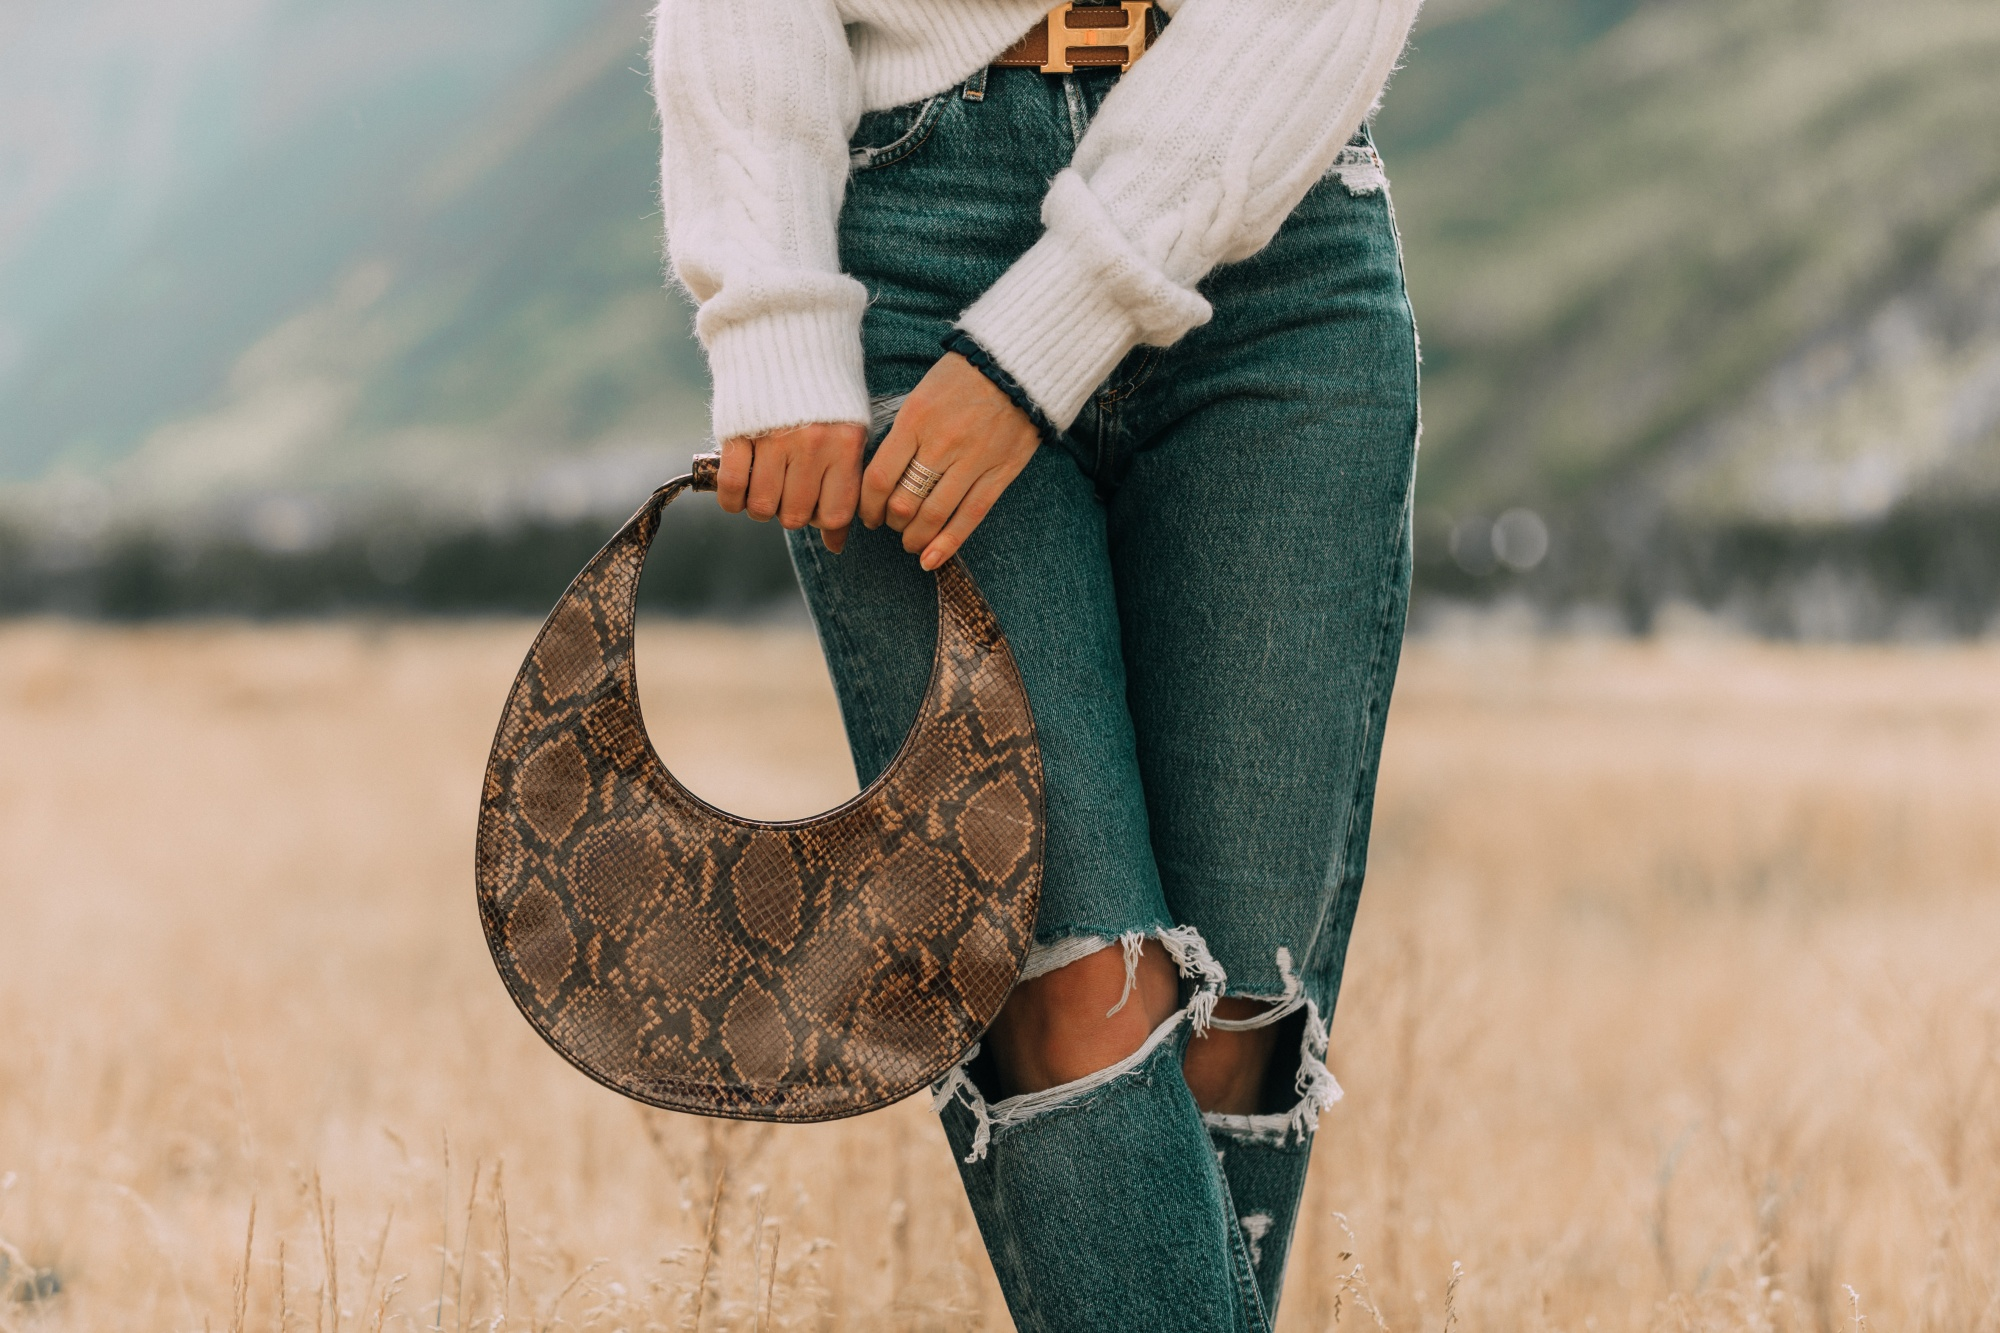 Baggy Jeans, Fashion blogger Erin Busbee of BusbeeStyle.com wearing Agolde baggy oversized jeans with Sam Edelman booties, white Express cable knit sweater, and Staud moon bag in Telluride, CO, designer handbags for fall